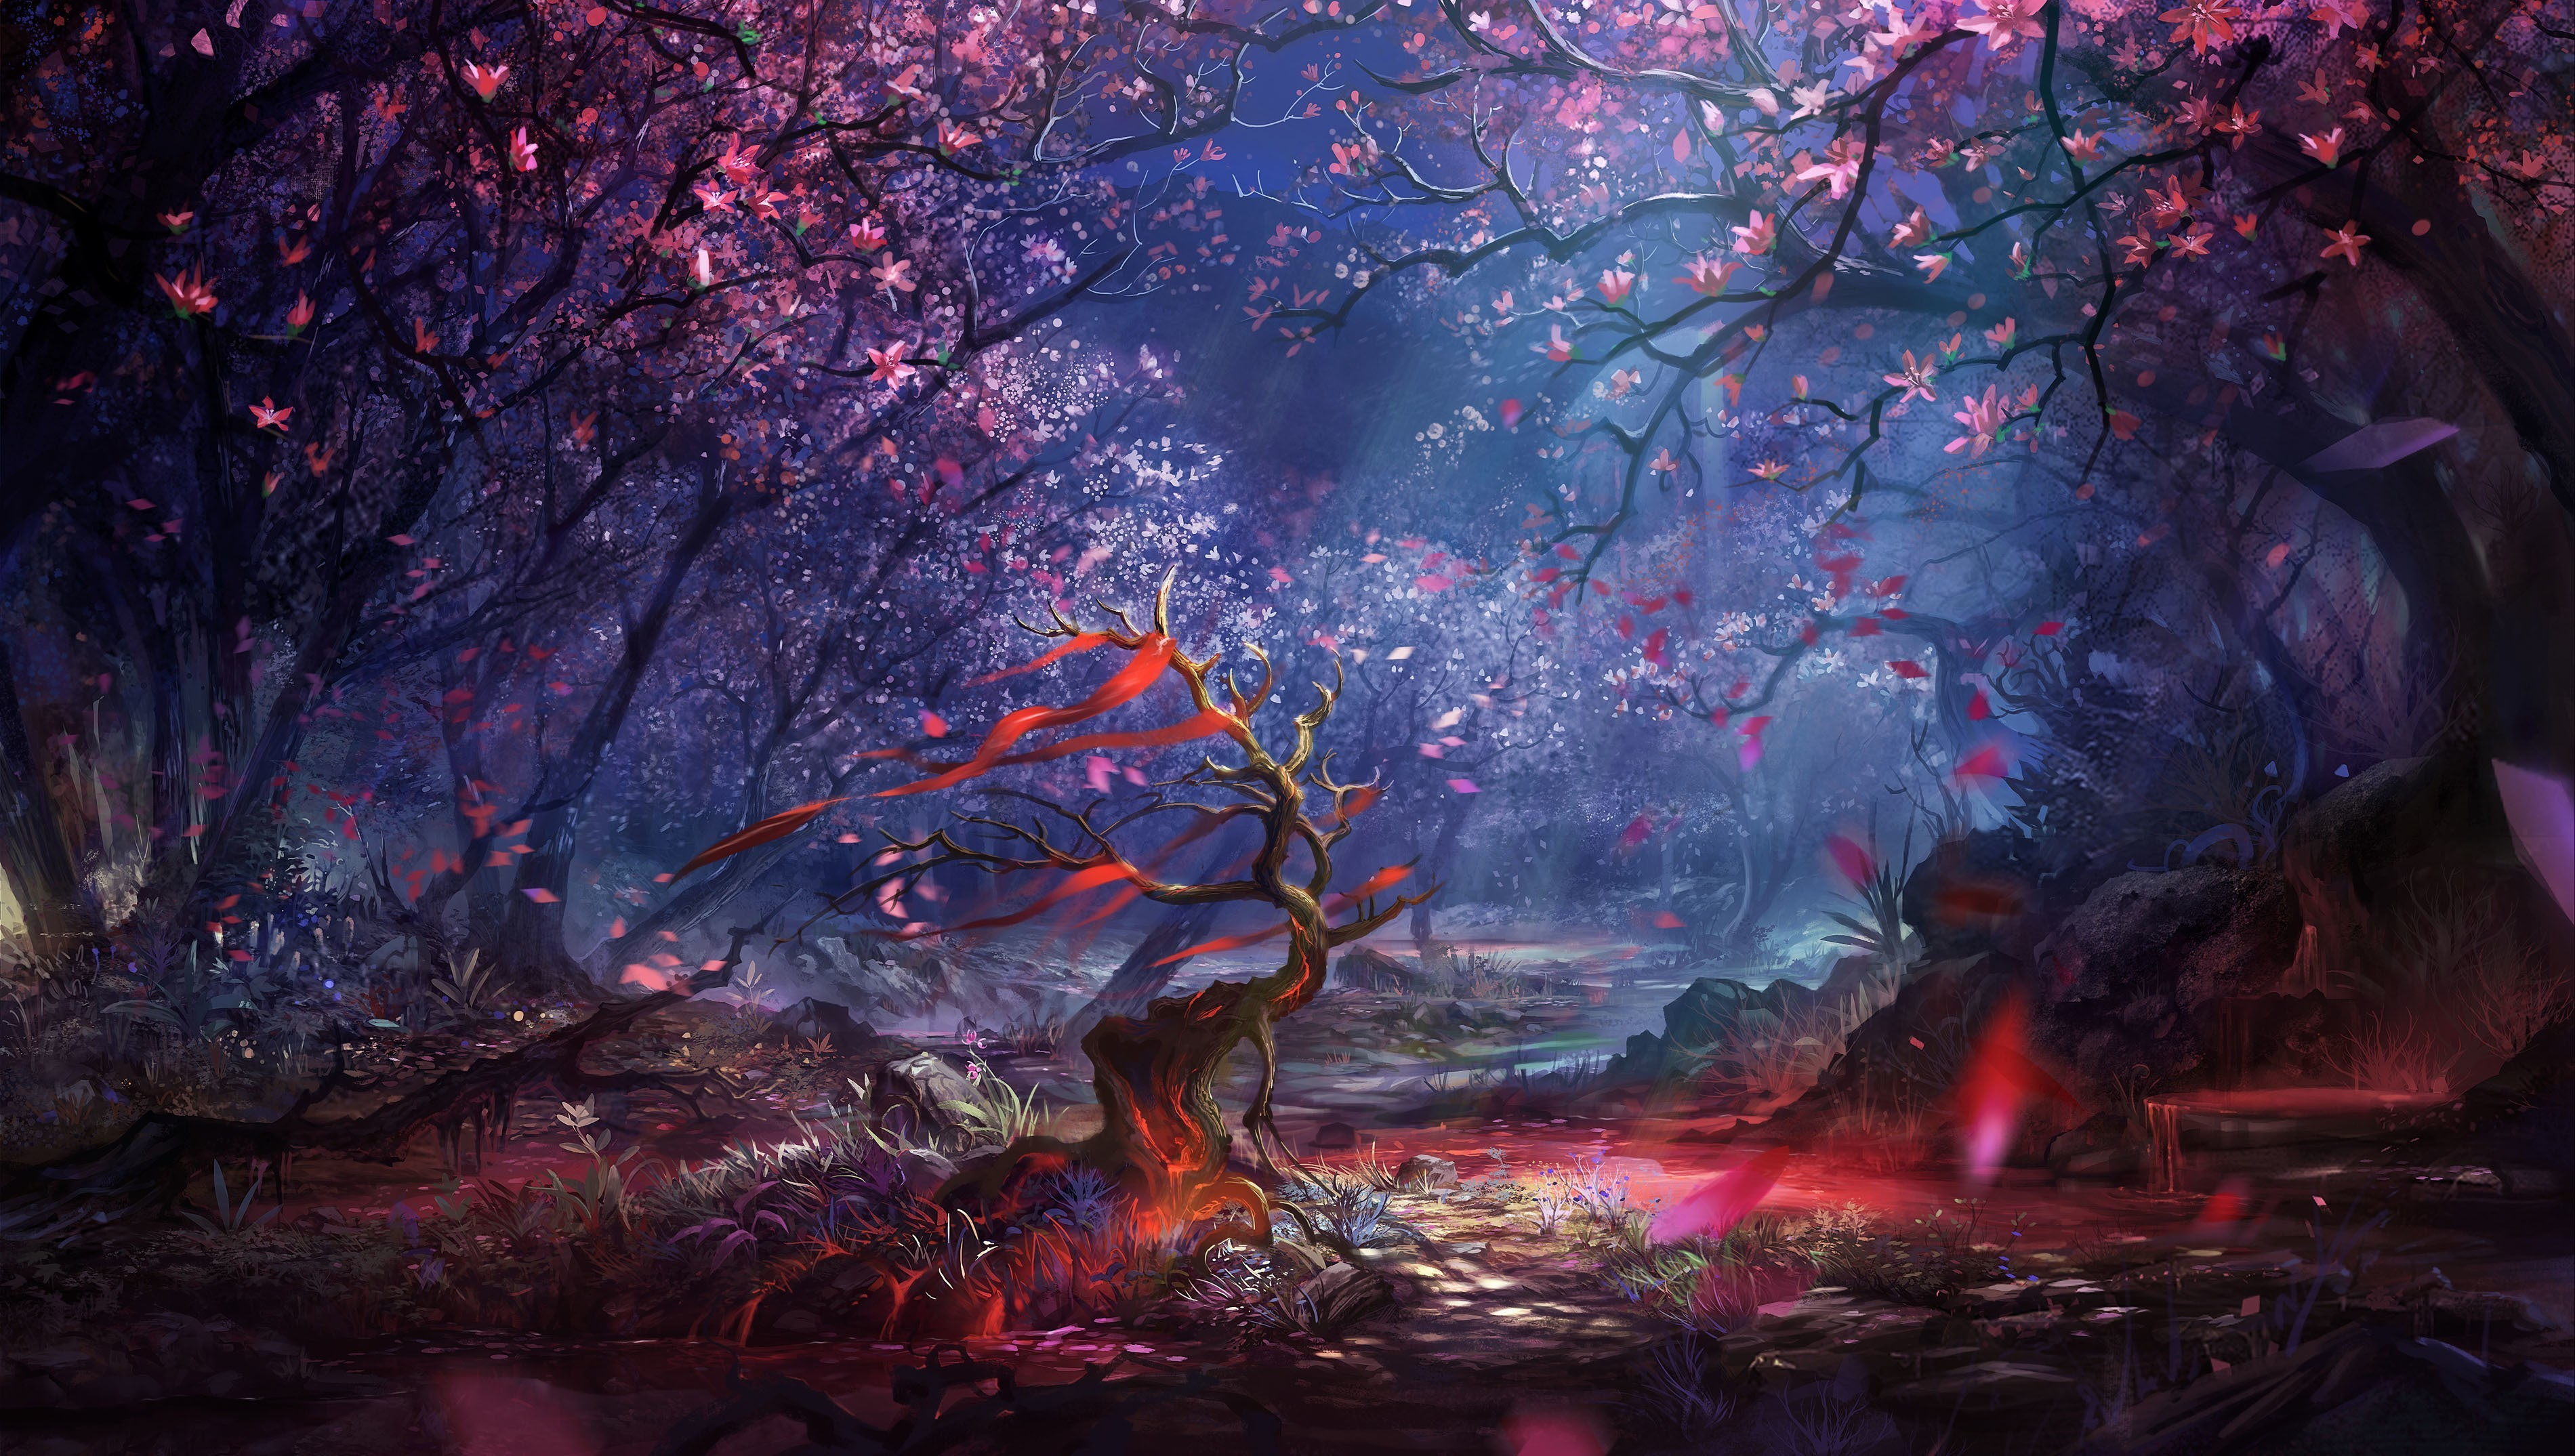 Download Beautiful Forest Art Hd Wallpapers In Screen - Fantasy Forest , HD Wallpaper & Backgrounds